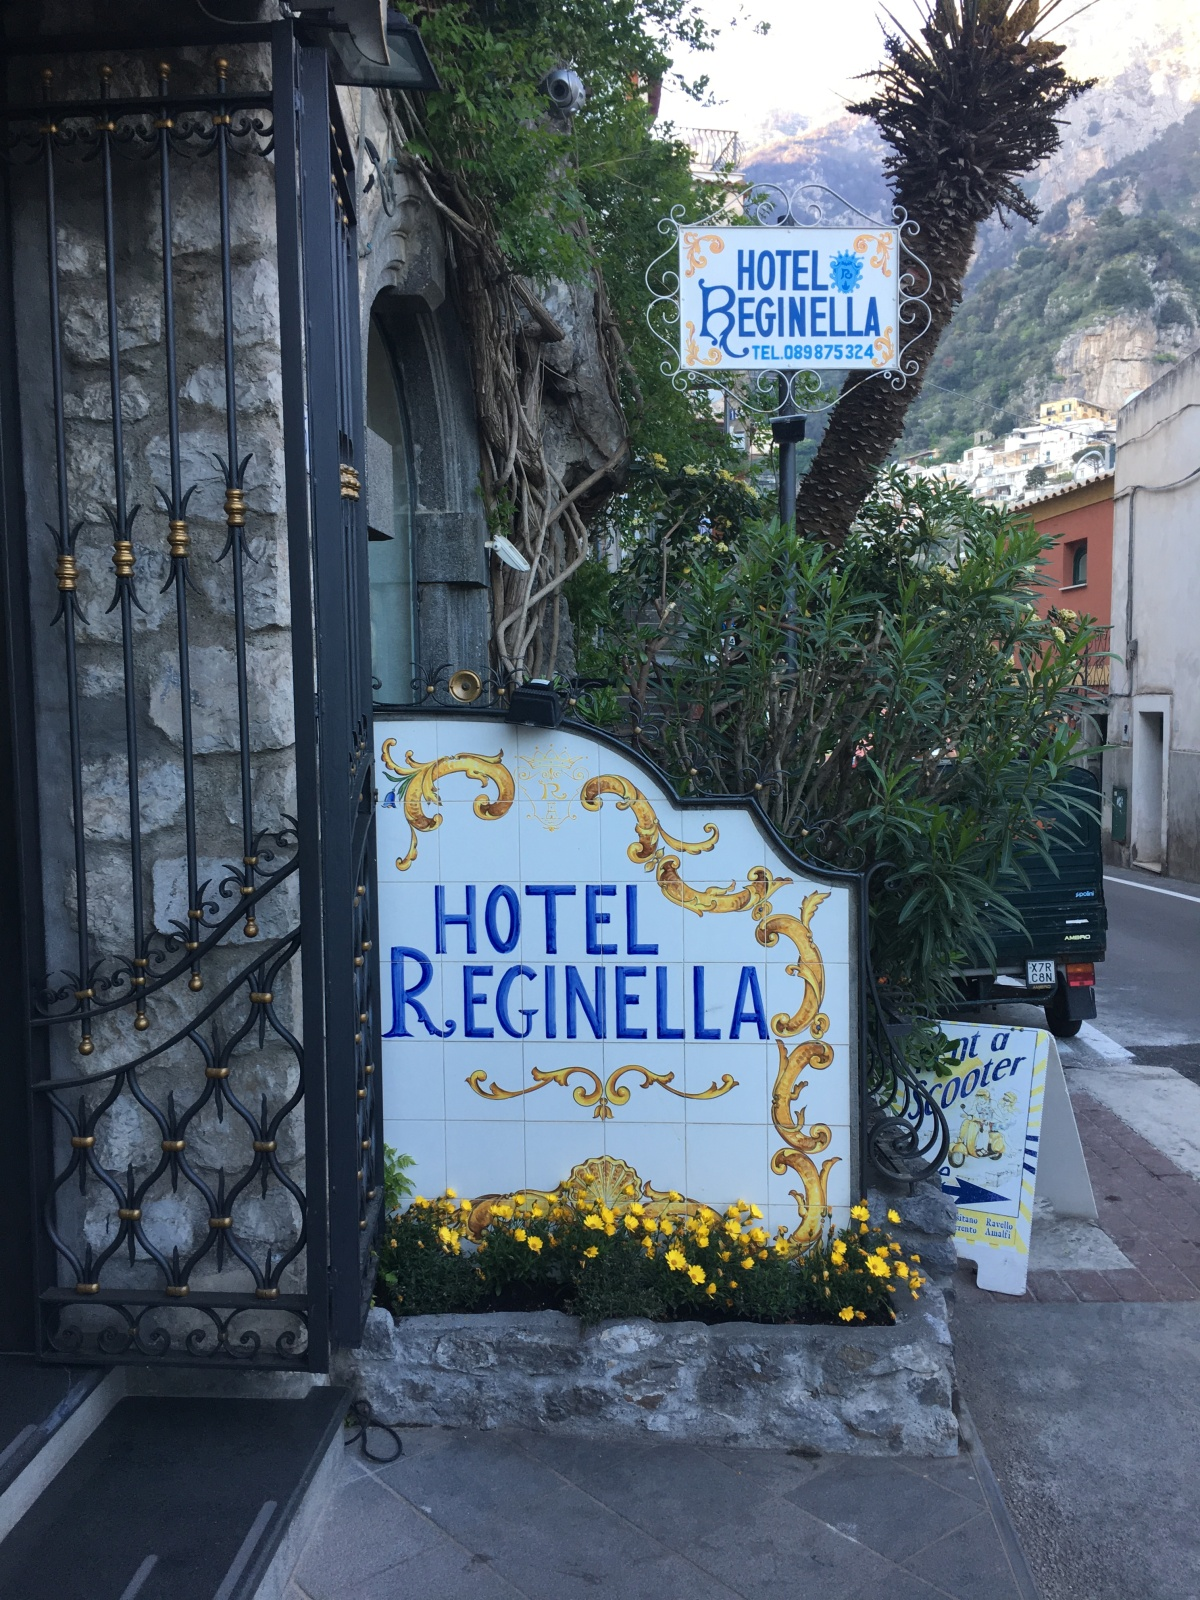 Hotel Reginella in Positano: Our Guide to a Babymoon to Italy